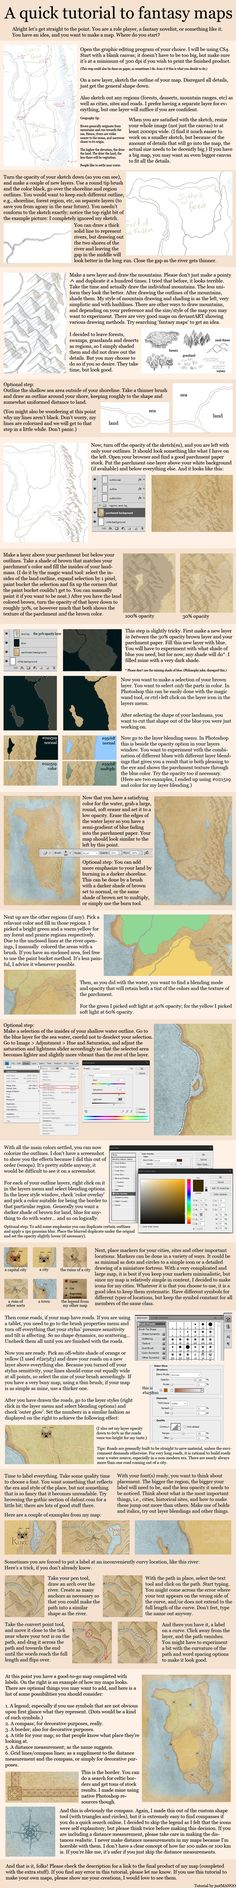 A quick tutorial to fantasy maps and cartography by justMANGO on DeviantArt